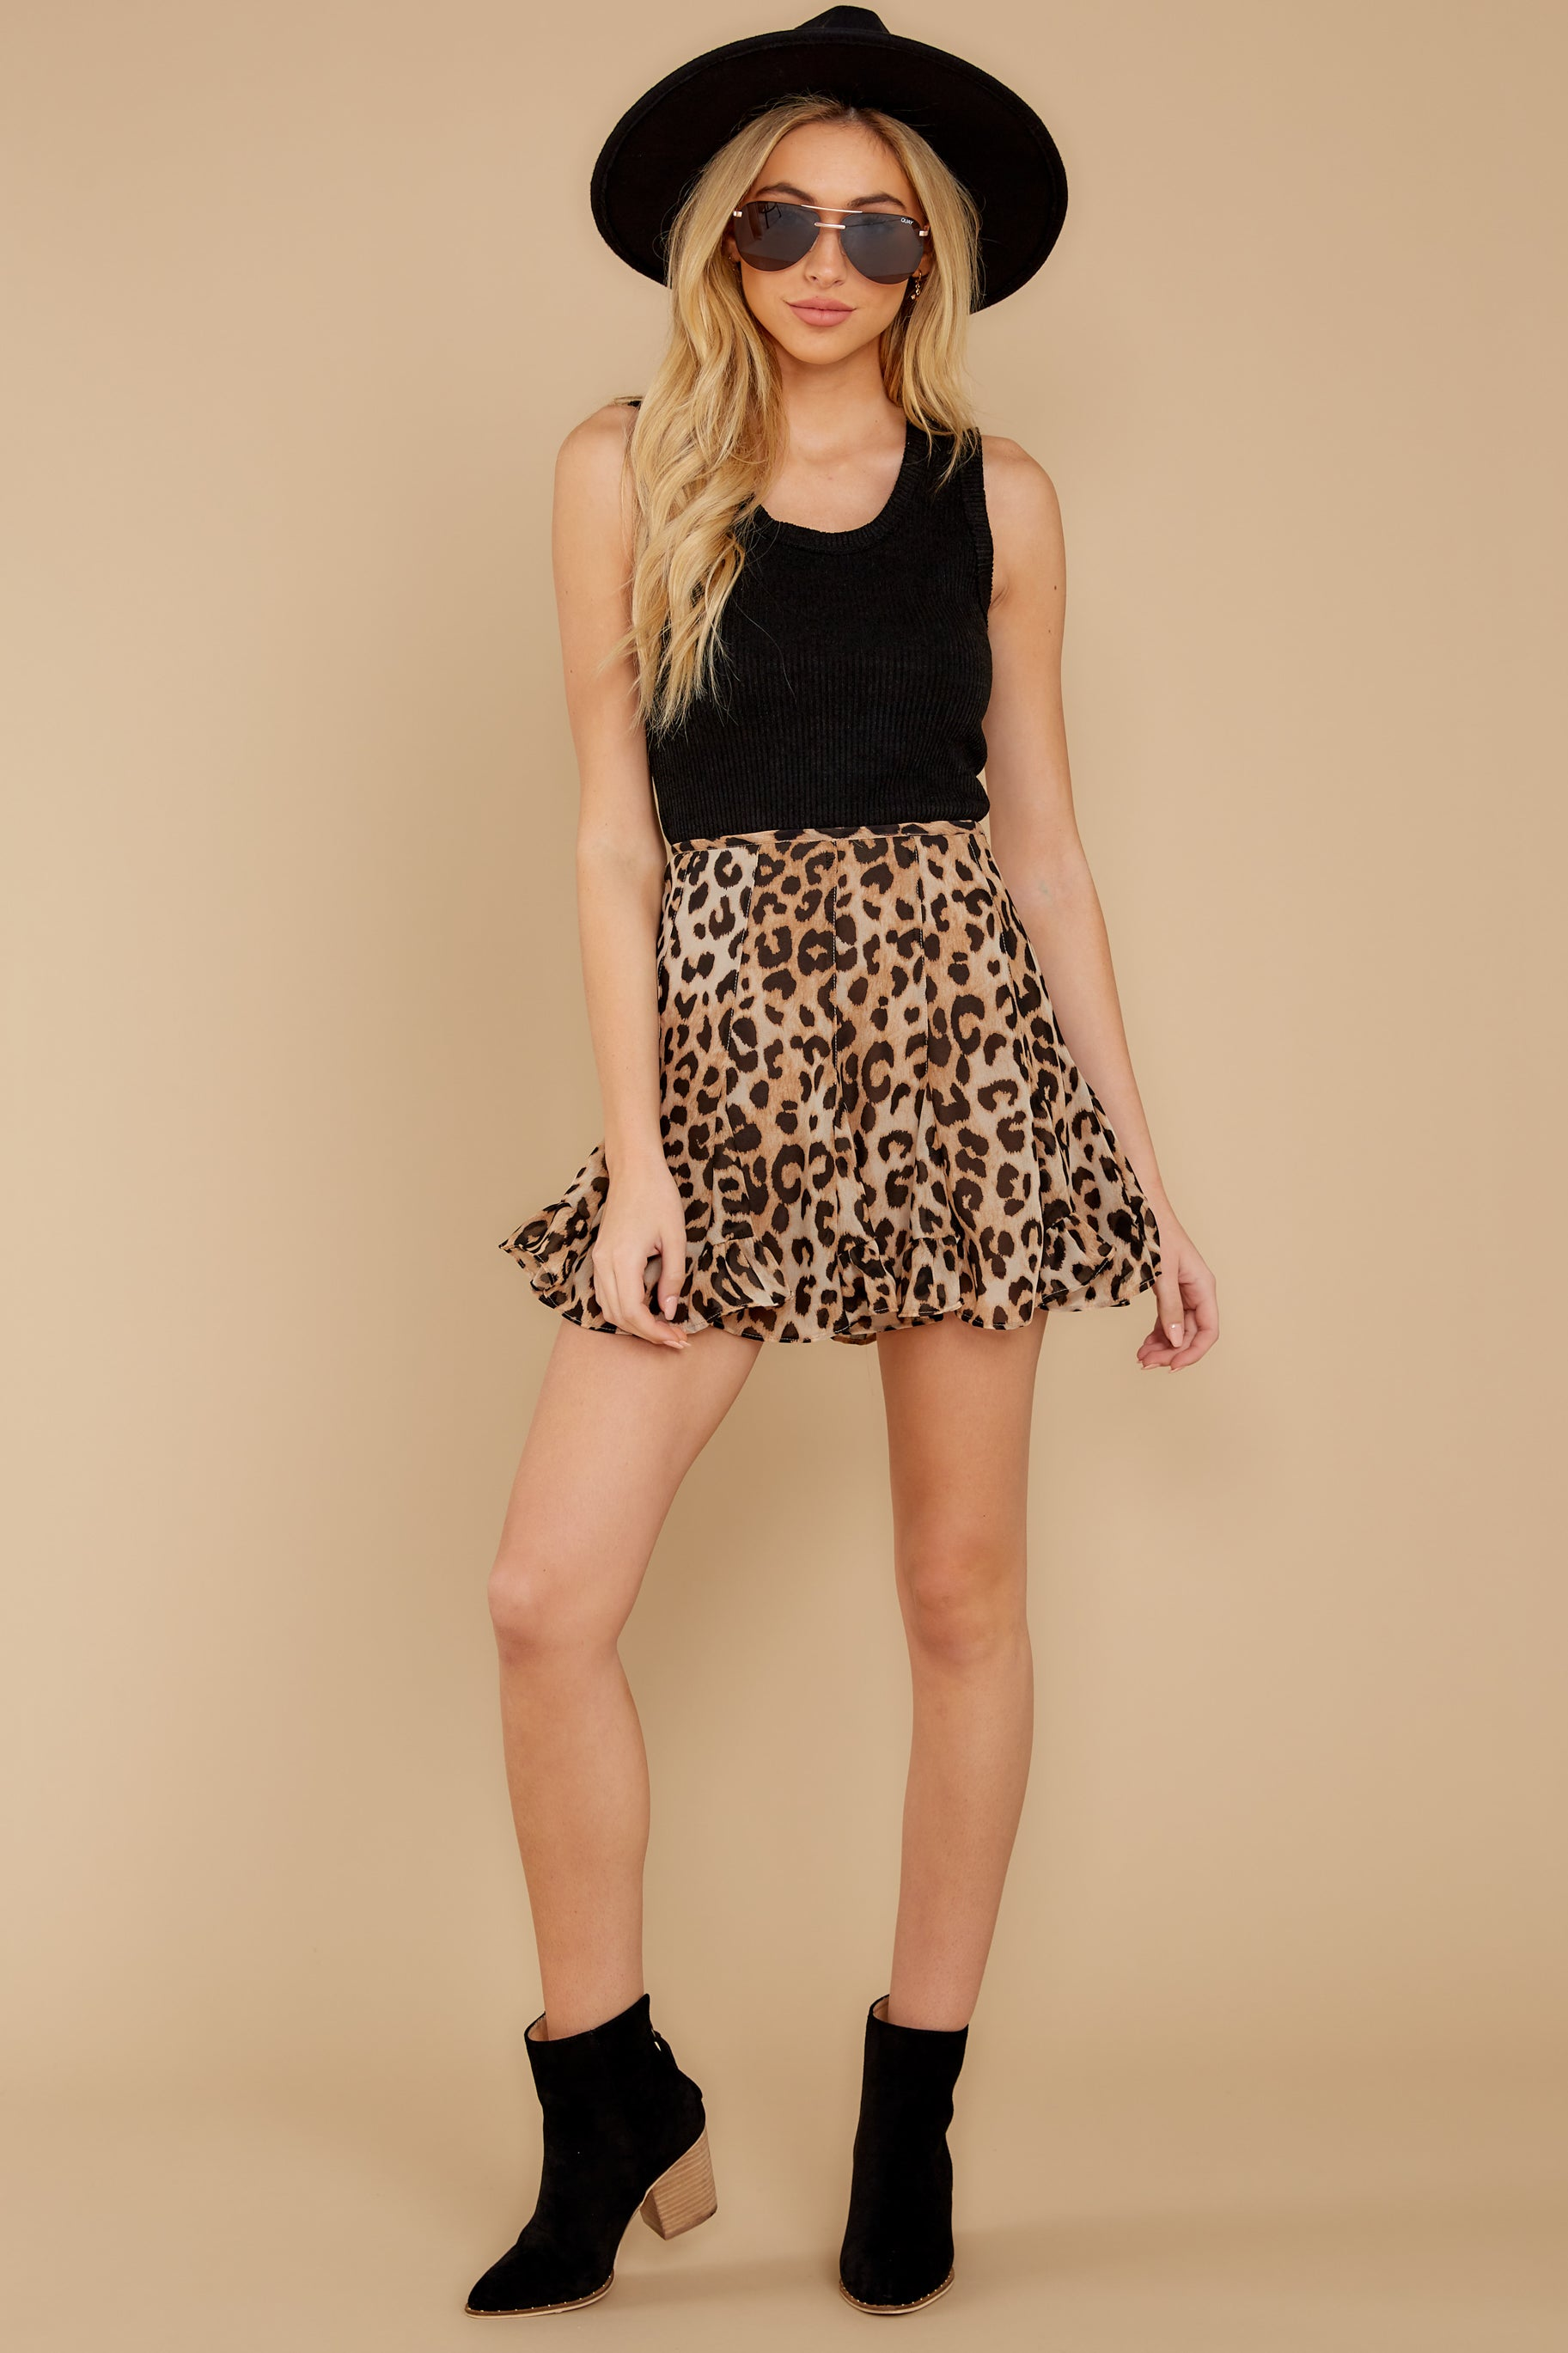 7 With Sass Leopard Print Skirt at reddress.com